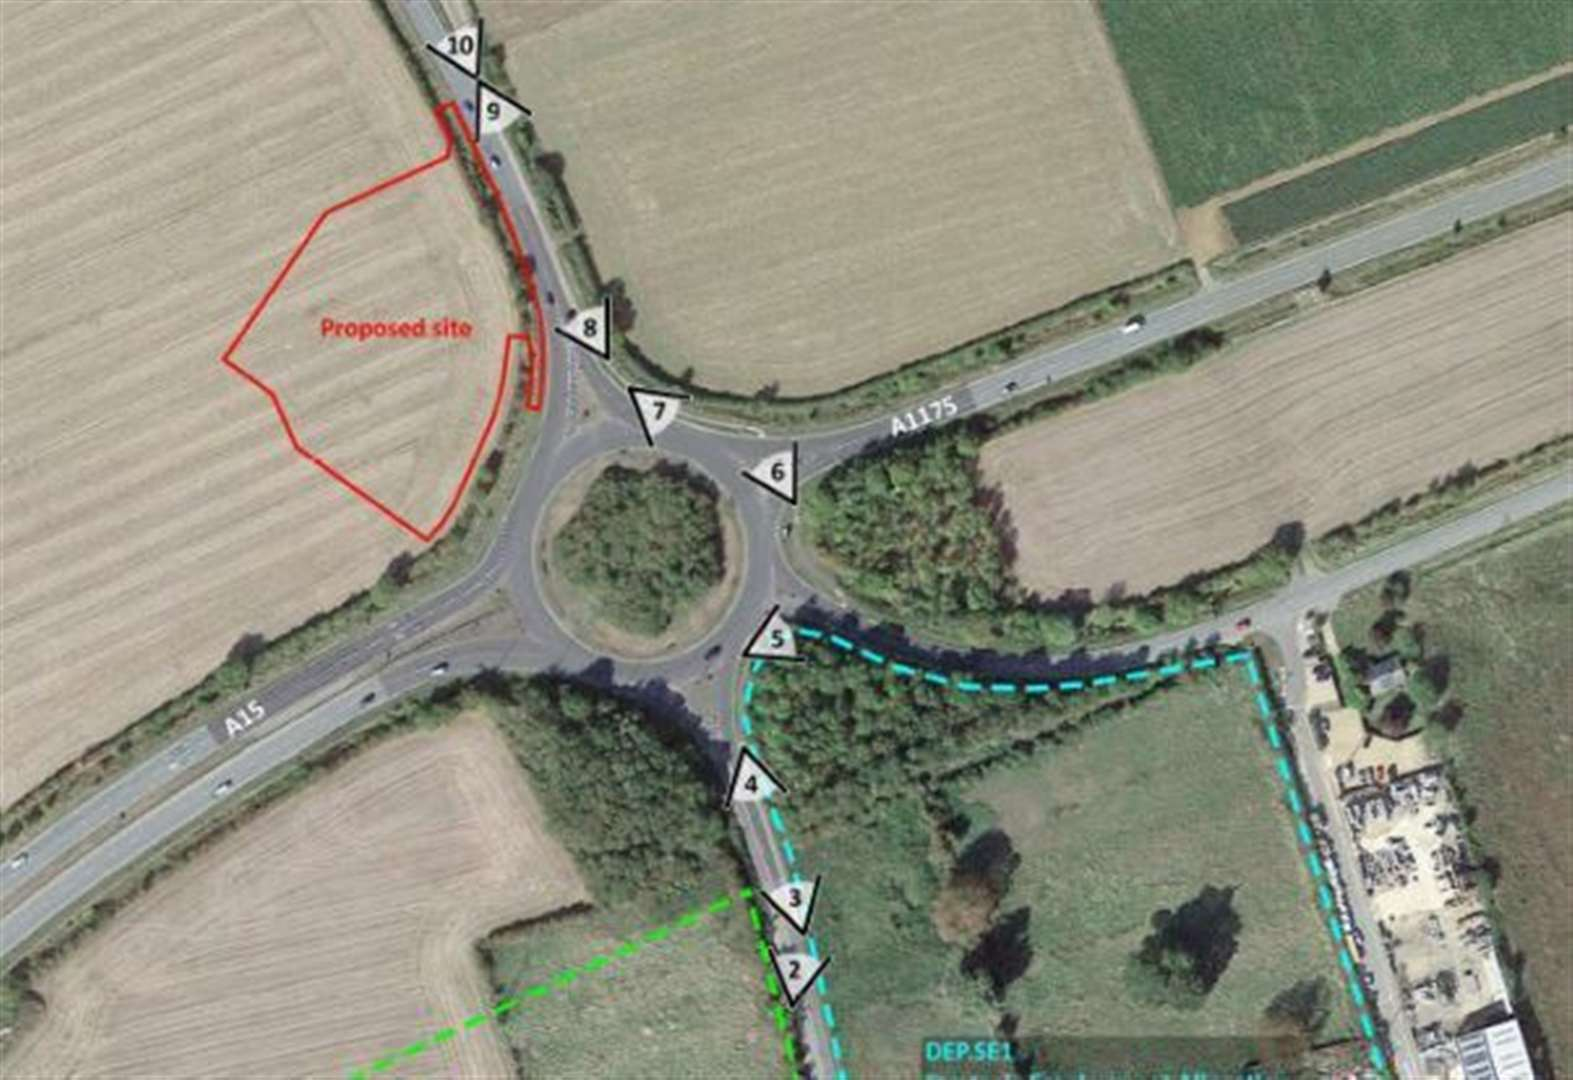 BP and Marks and Spencer plans for petrol station refused at Market Deeping